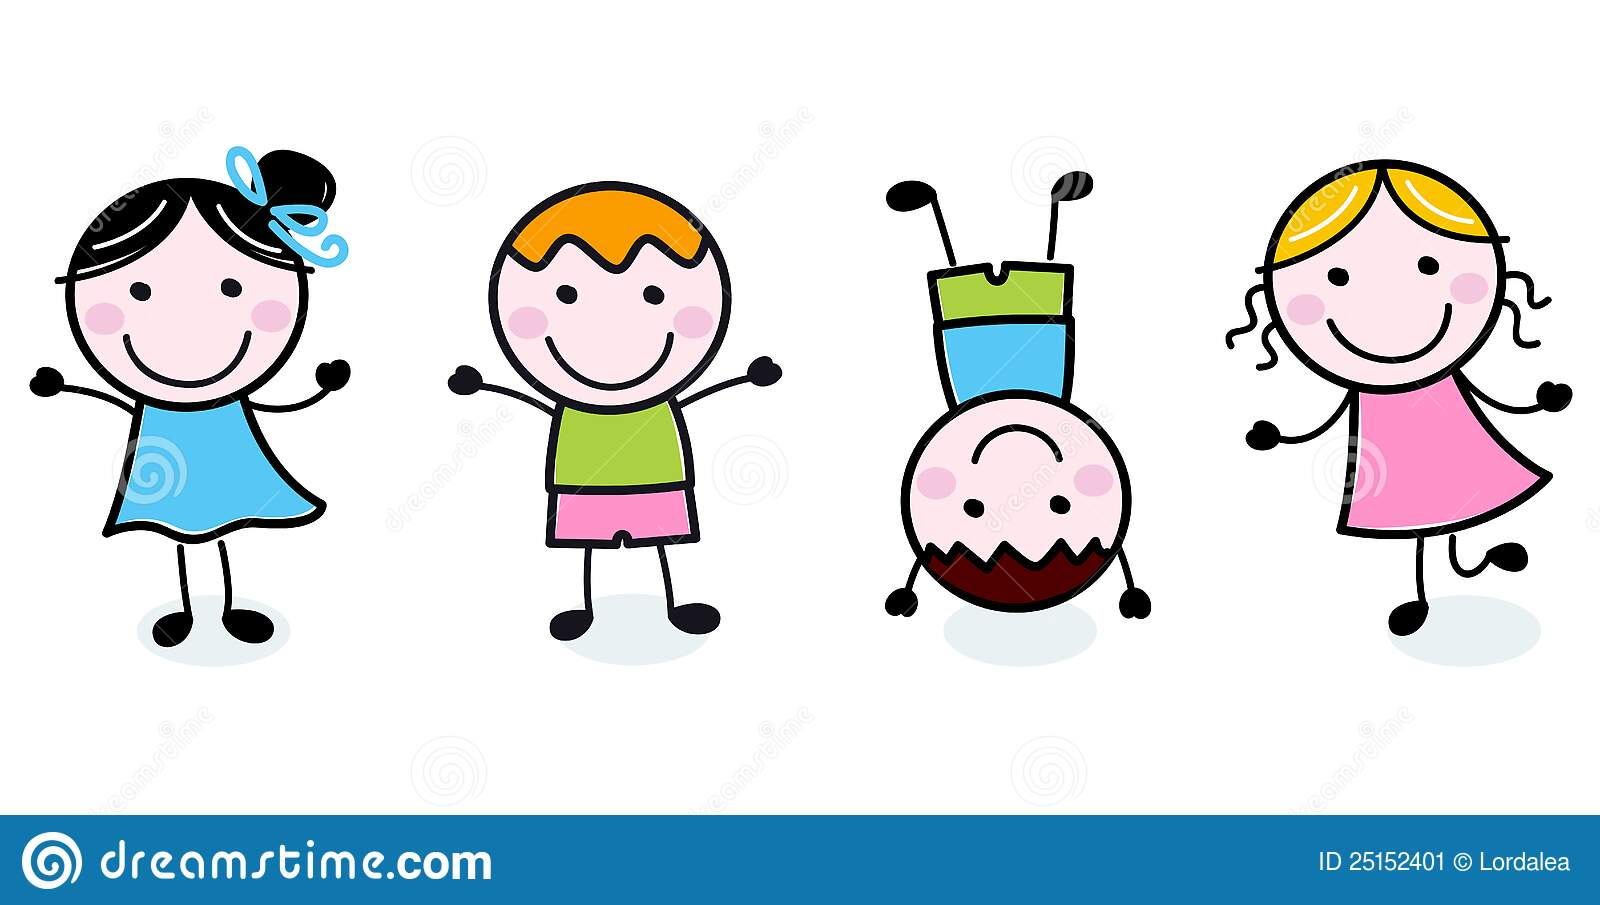 Scribble Drawing Kids : Doodle happy kids group stock vector illustration of